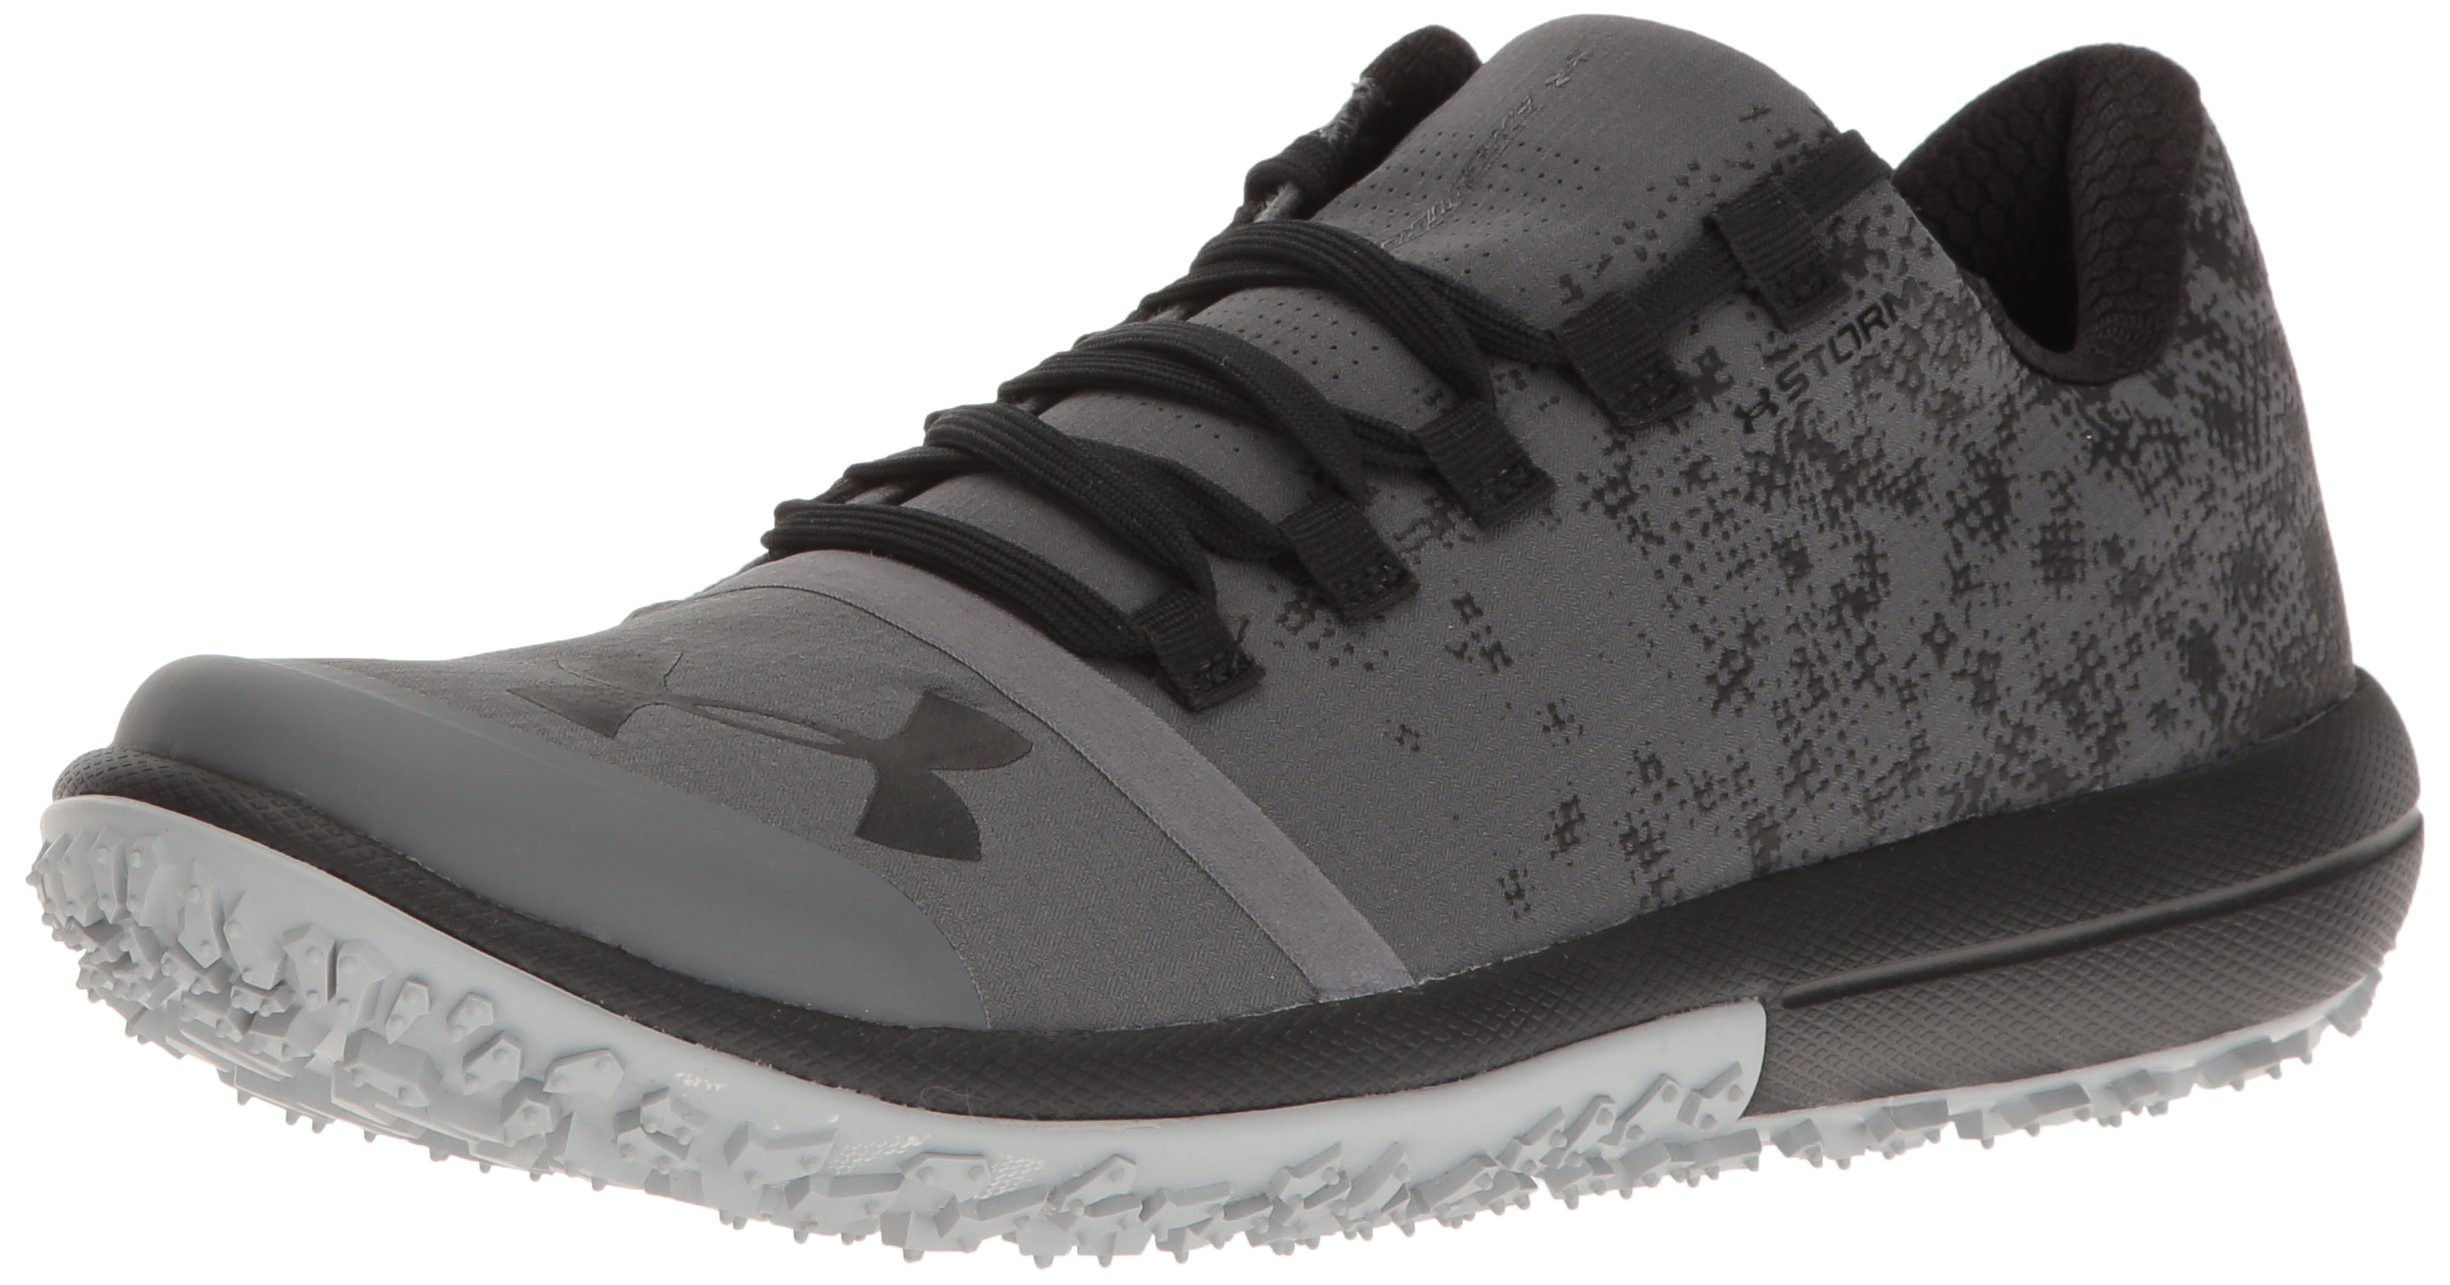 Under Armour Women's Speed Tire Ascent Low, Rhino Gray/Black/Black, 5.5 B(M) US